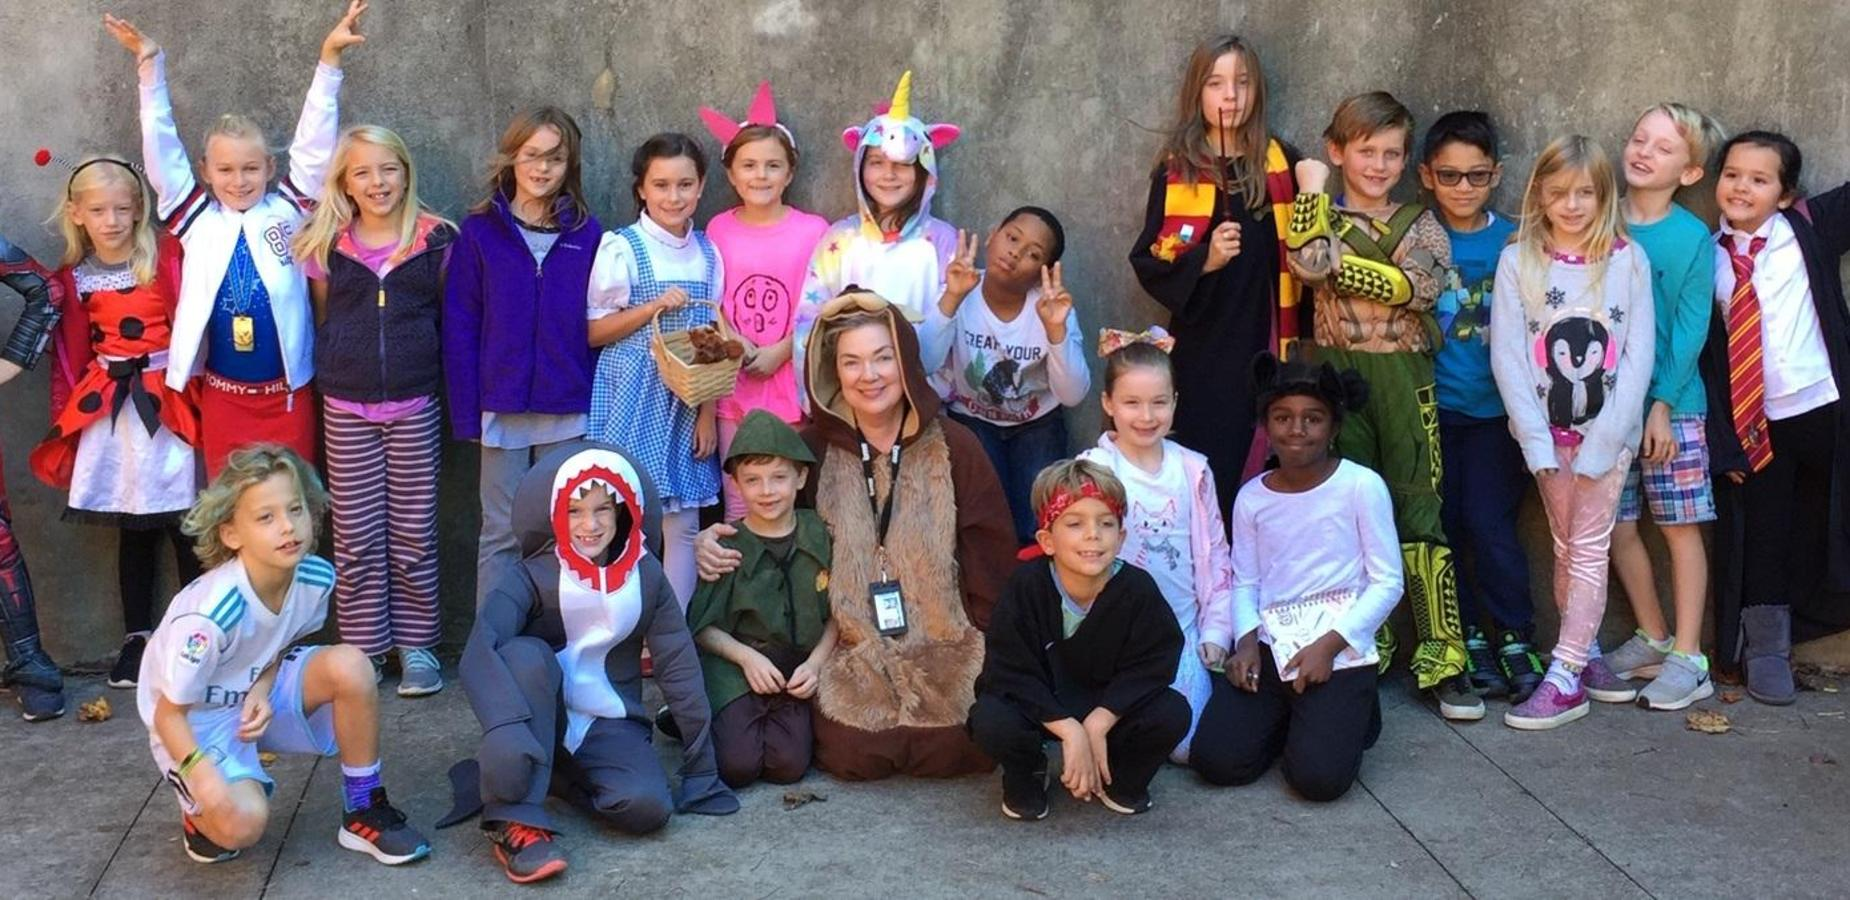 Students dressed up for book character day